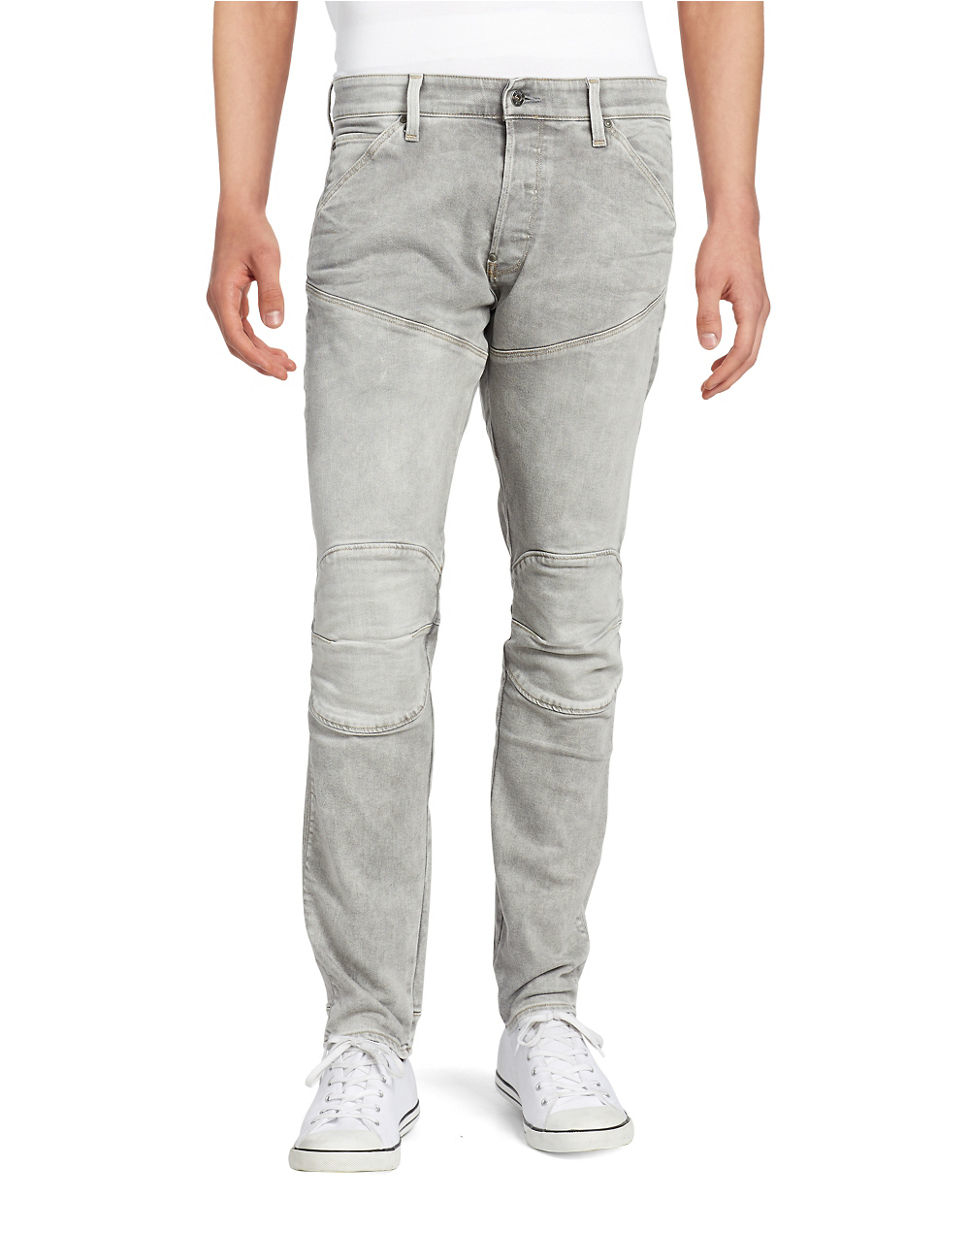 g star raw tapered straight leg jeans in gray for men lyst. Black Bedroom Furniture Sets. Home Design Ideas